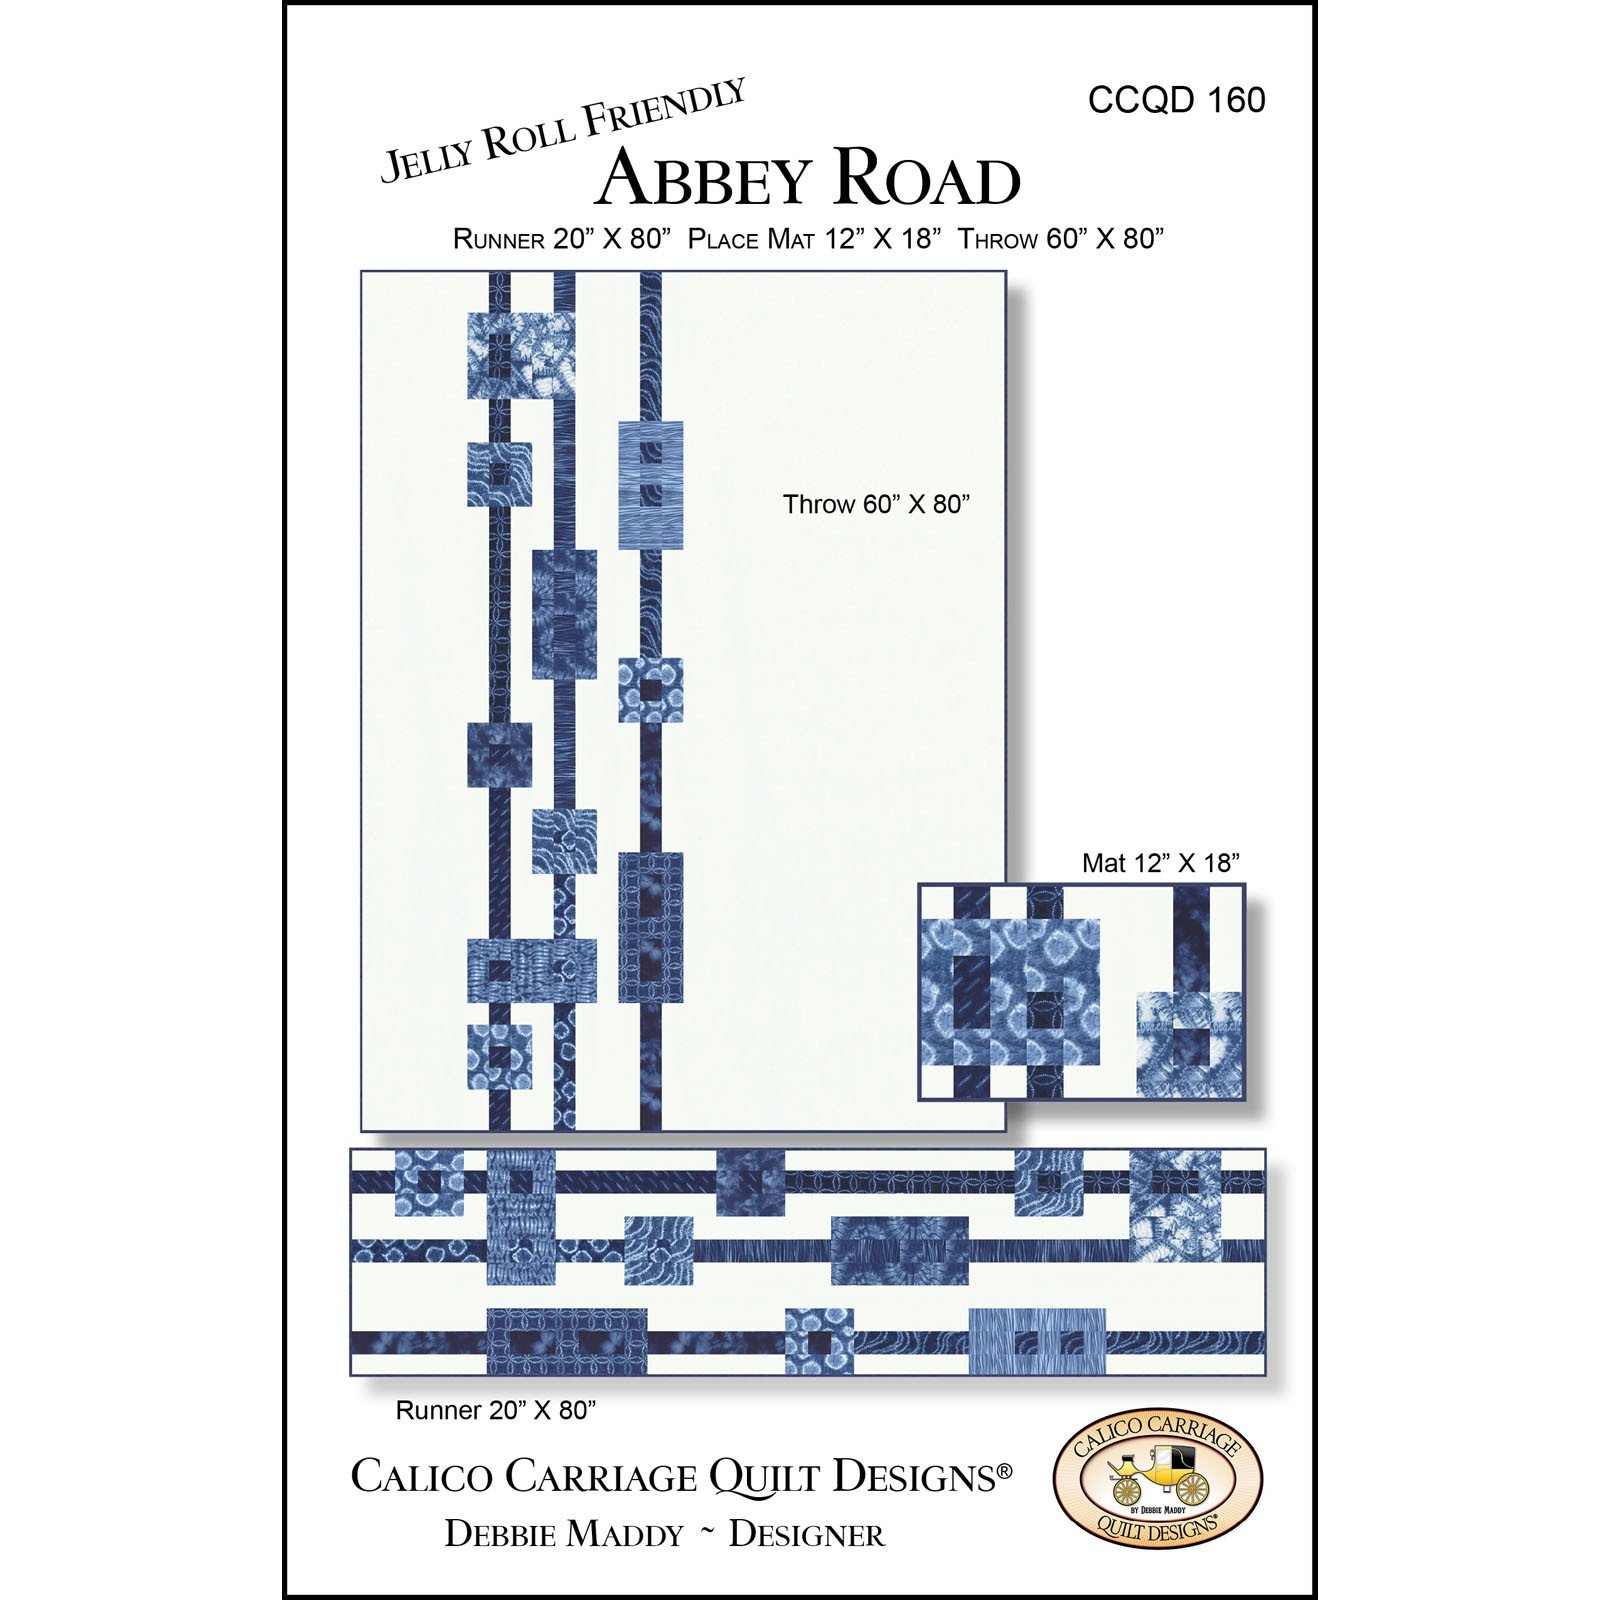 Abbey Road Quilt Calico Carriage Quilt Designs - 714329927169 : calico carriage quilt designs - Adamdwight.com